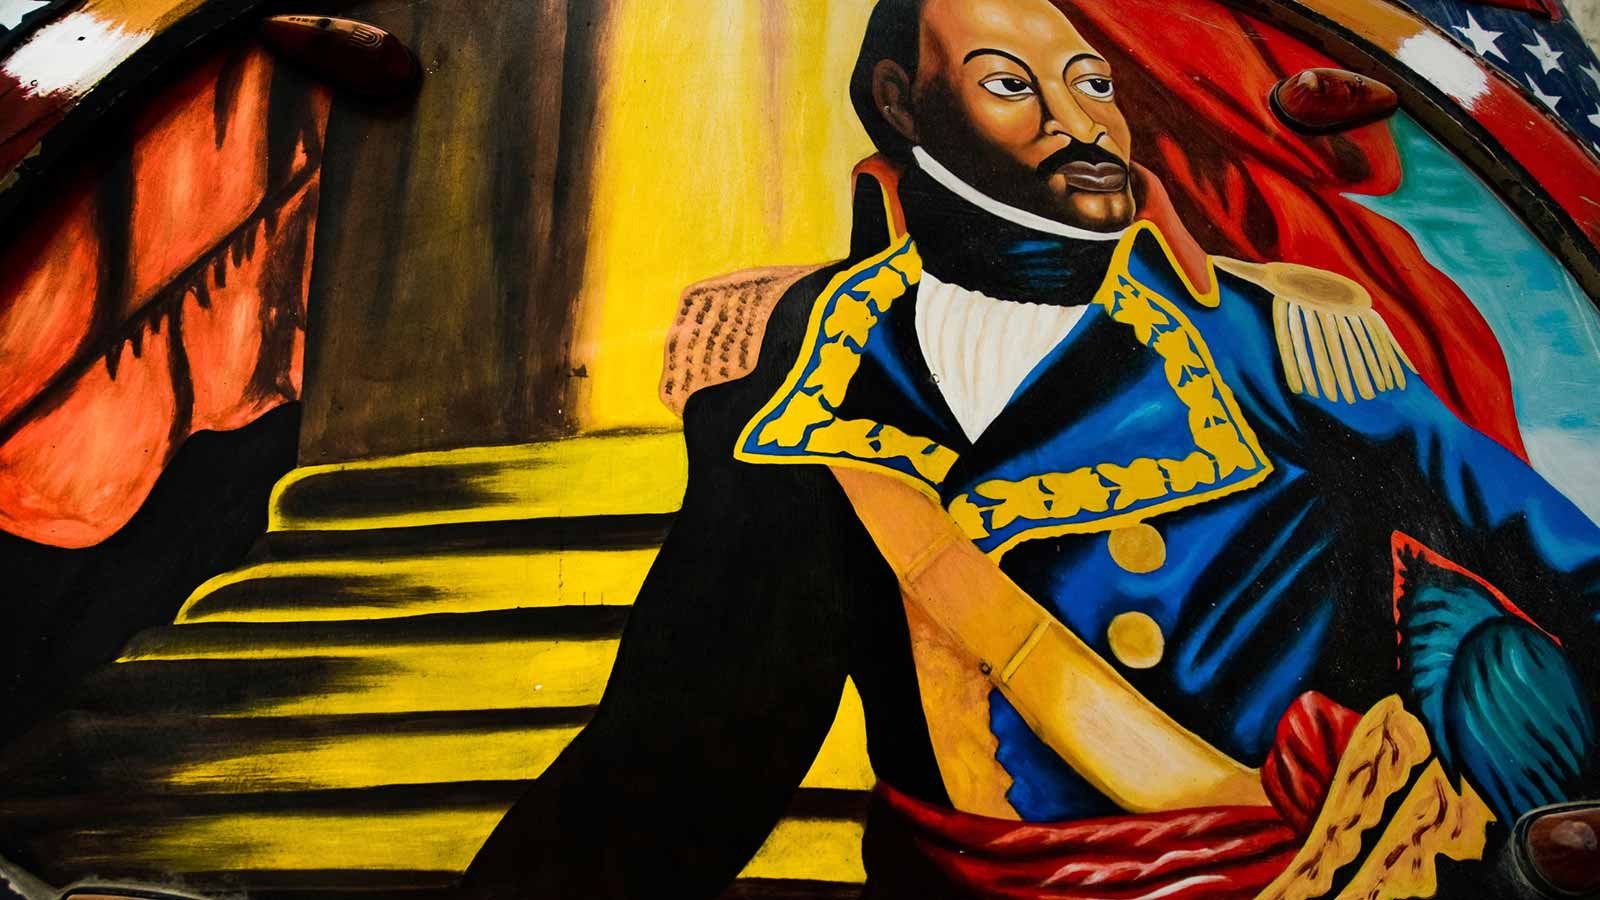 The Haitian Revolutionary leader Toussaint L'Ouverture painted on the body of a bus operating in Port-au-Prince, July 2008. Photo by Jan Sochor/Latincontent/Getty Images